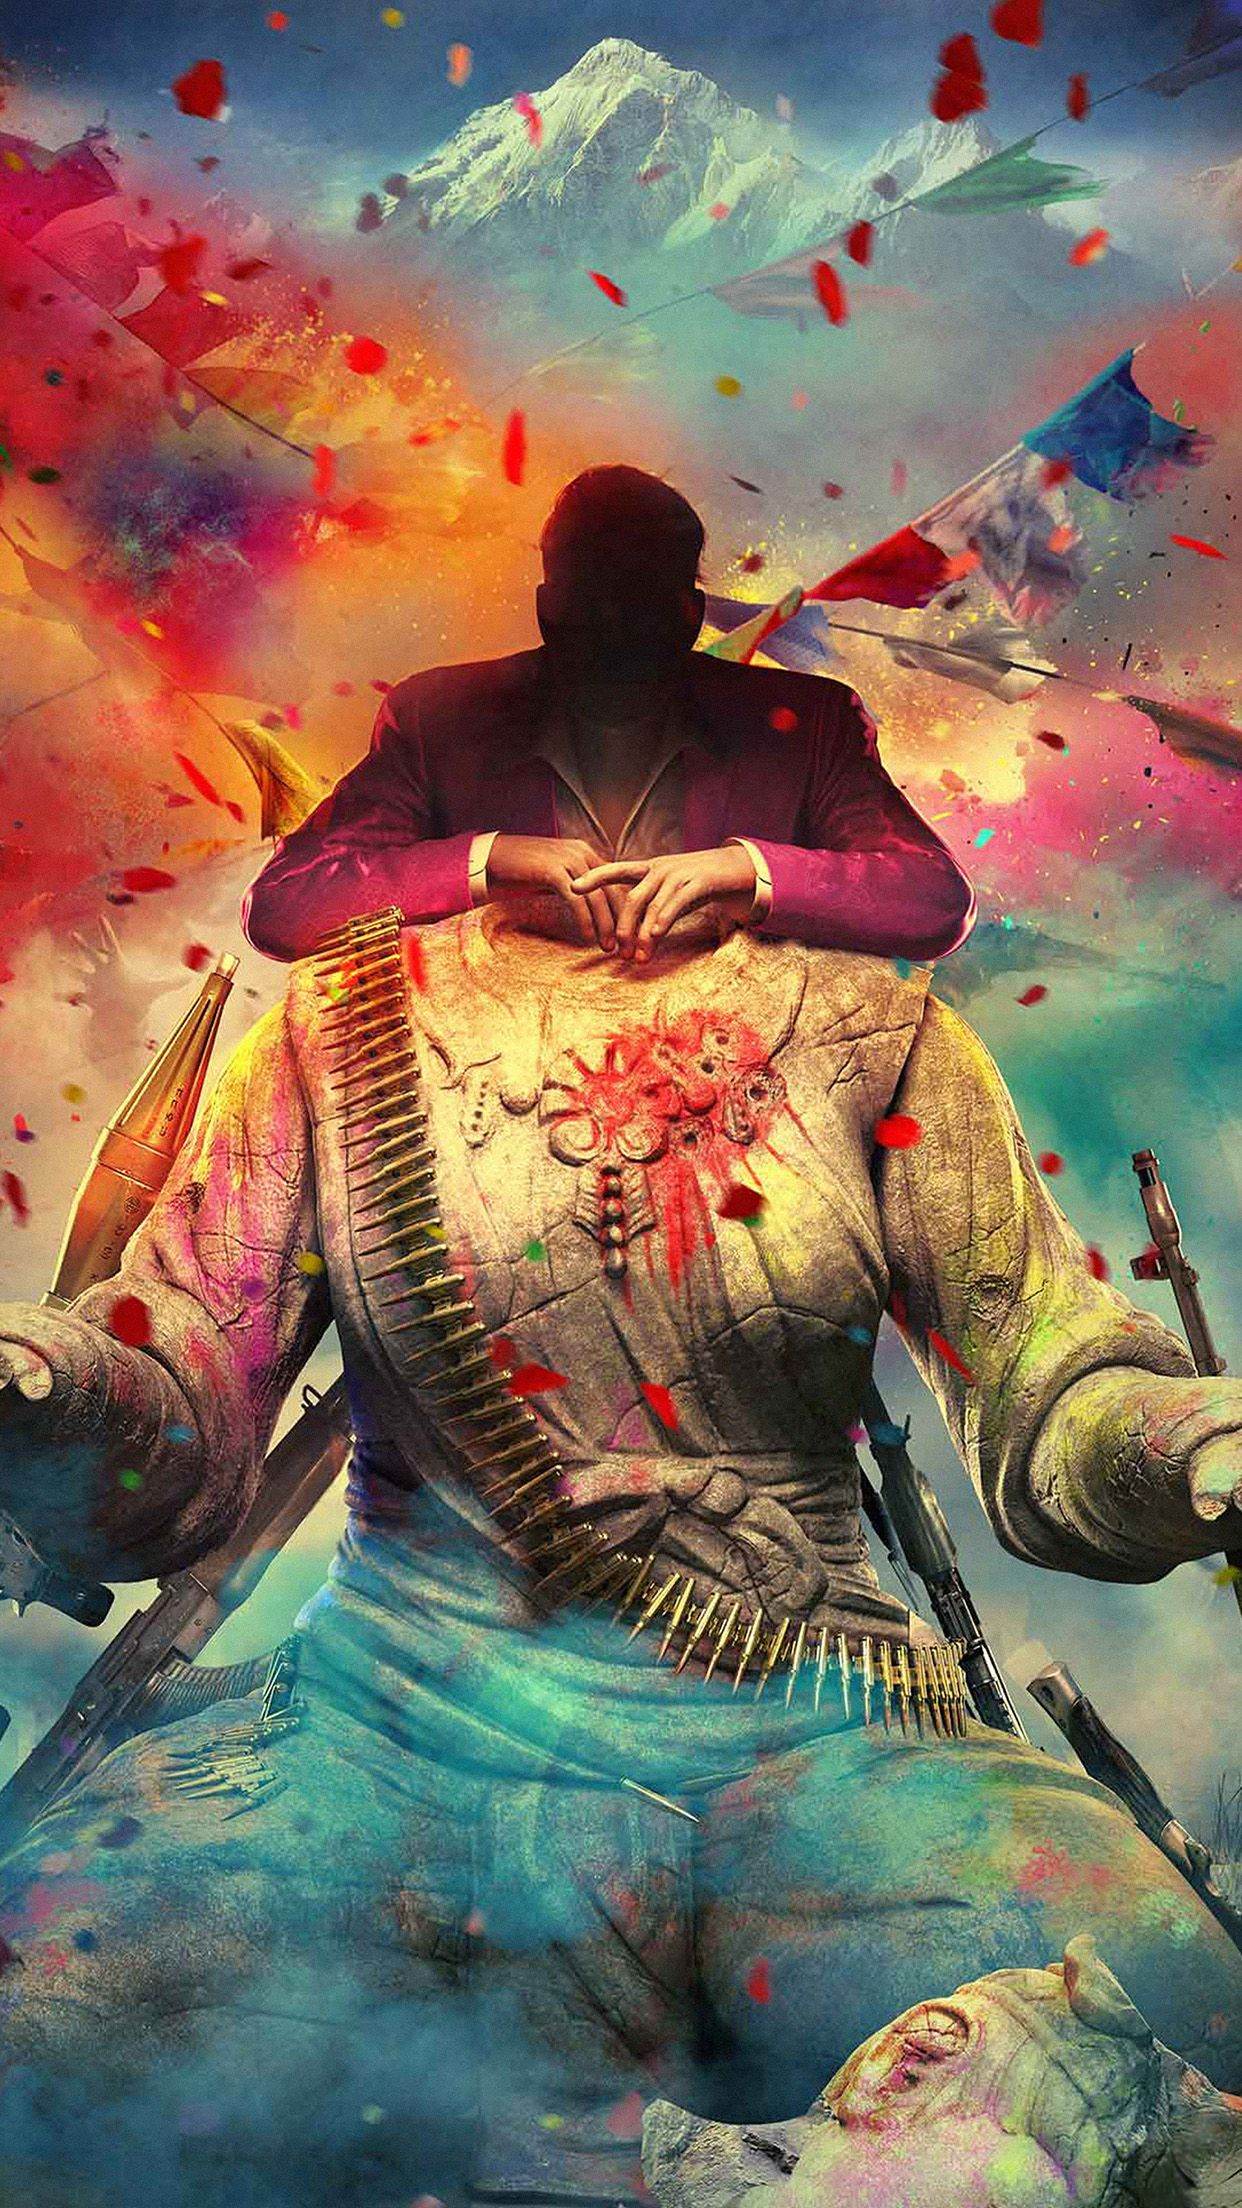 far cry 4 game digital art android wallpaper